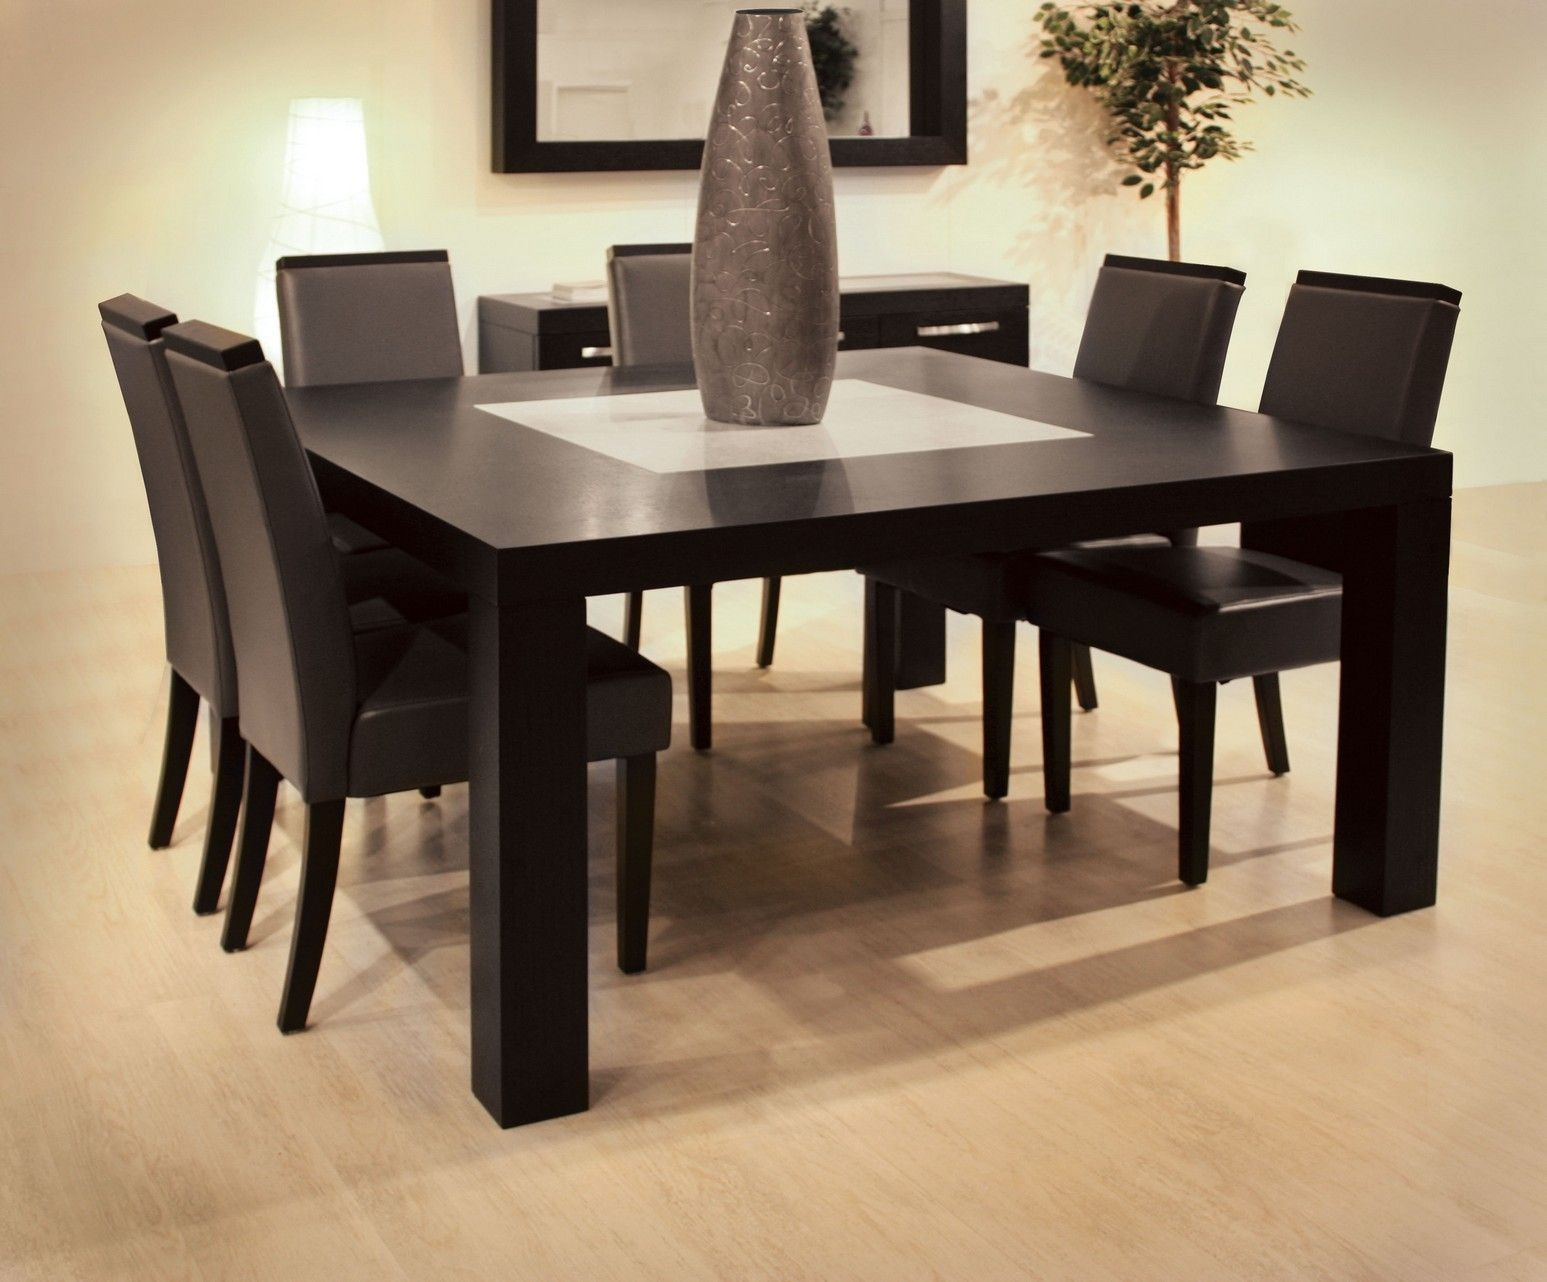 square dining table counter height table marble top home decor